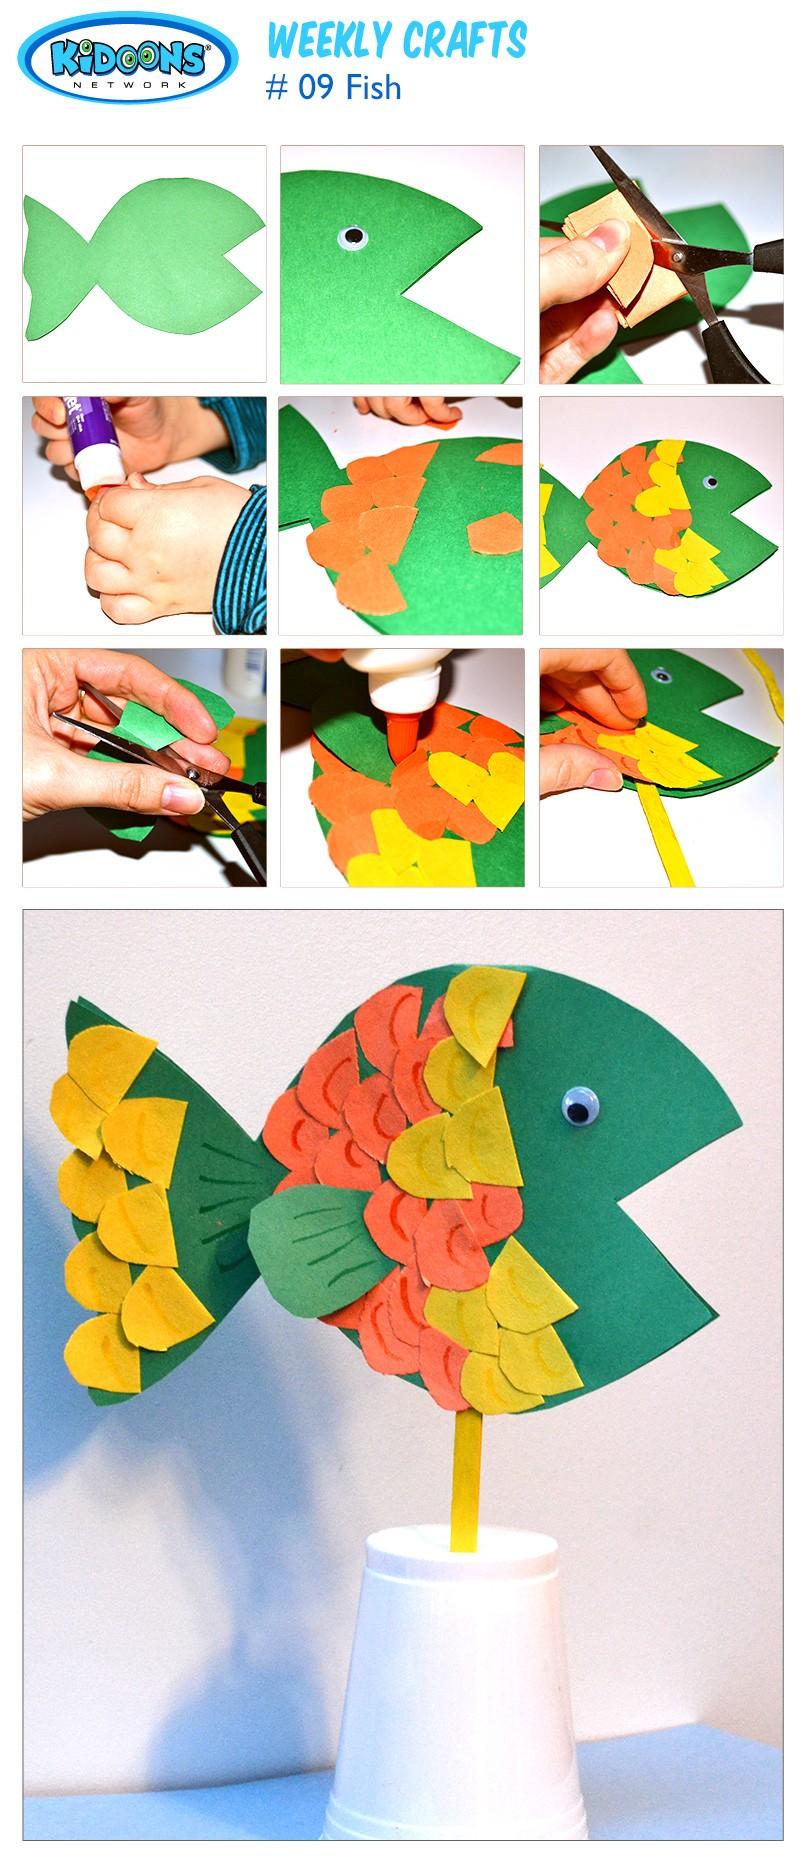 kidoons-crafts-fish.jpg